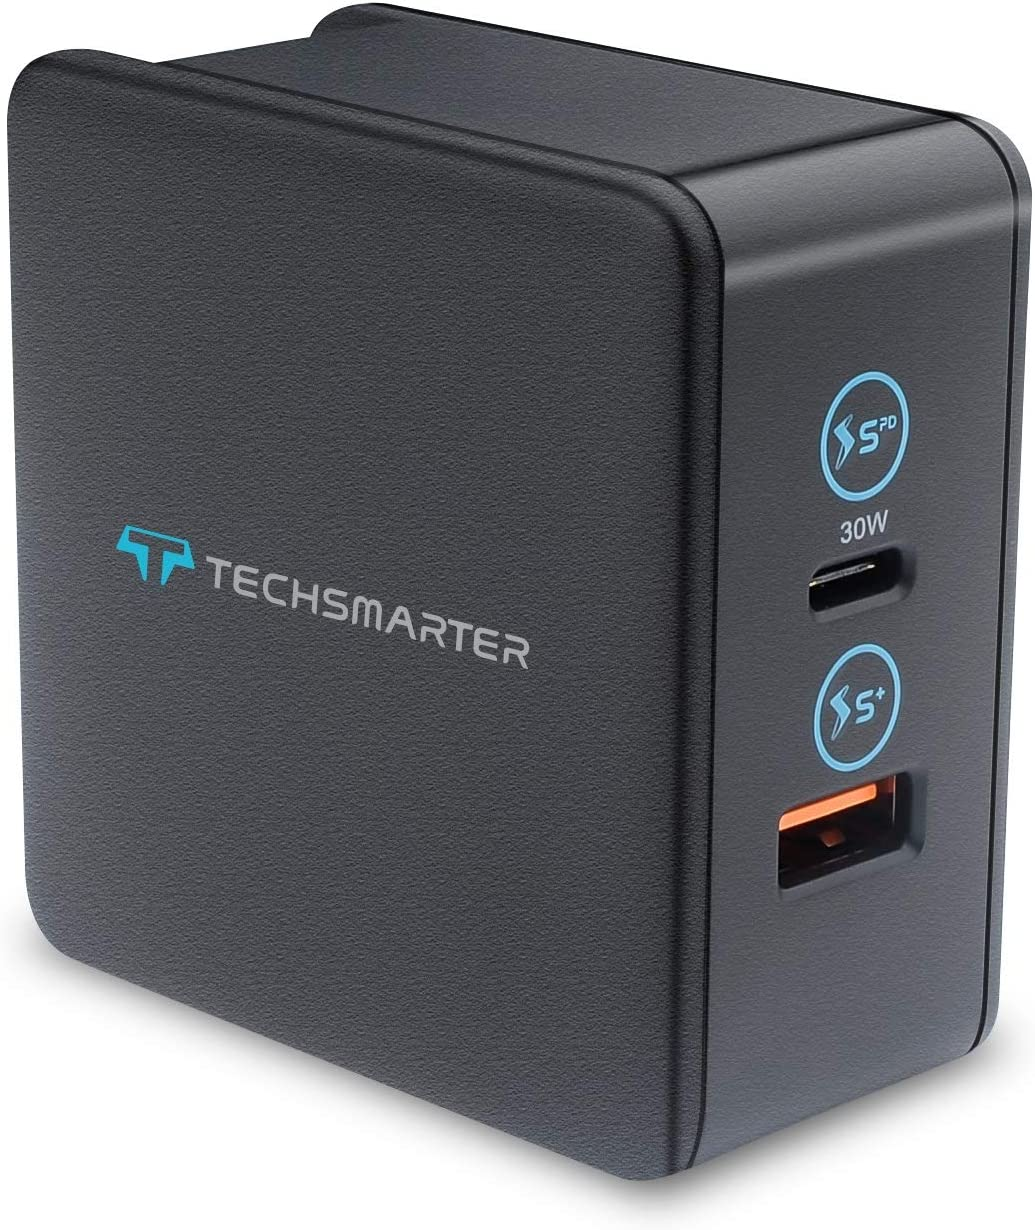 Techsmarter 48W Dual USB-C PD Wall Charger with 30W Power Delivery and 18W USB Ports. Compatible iPhone 11, XS, XR, X, 8, iPad, MacBook, Samsung S20, S10, S9, S8, S7 Note 8,9,10, Android Phones